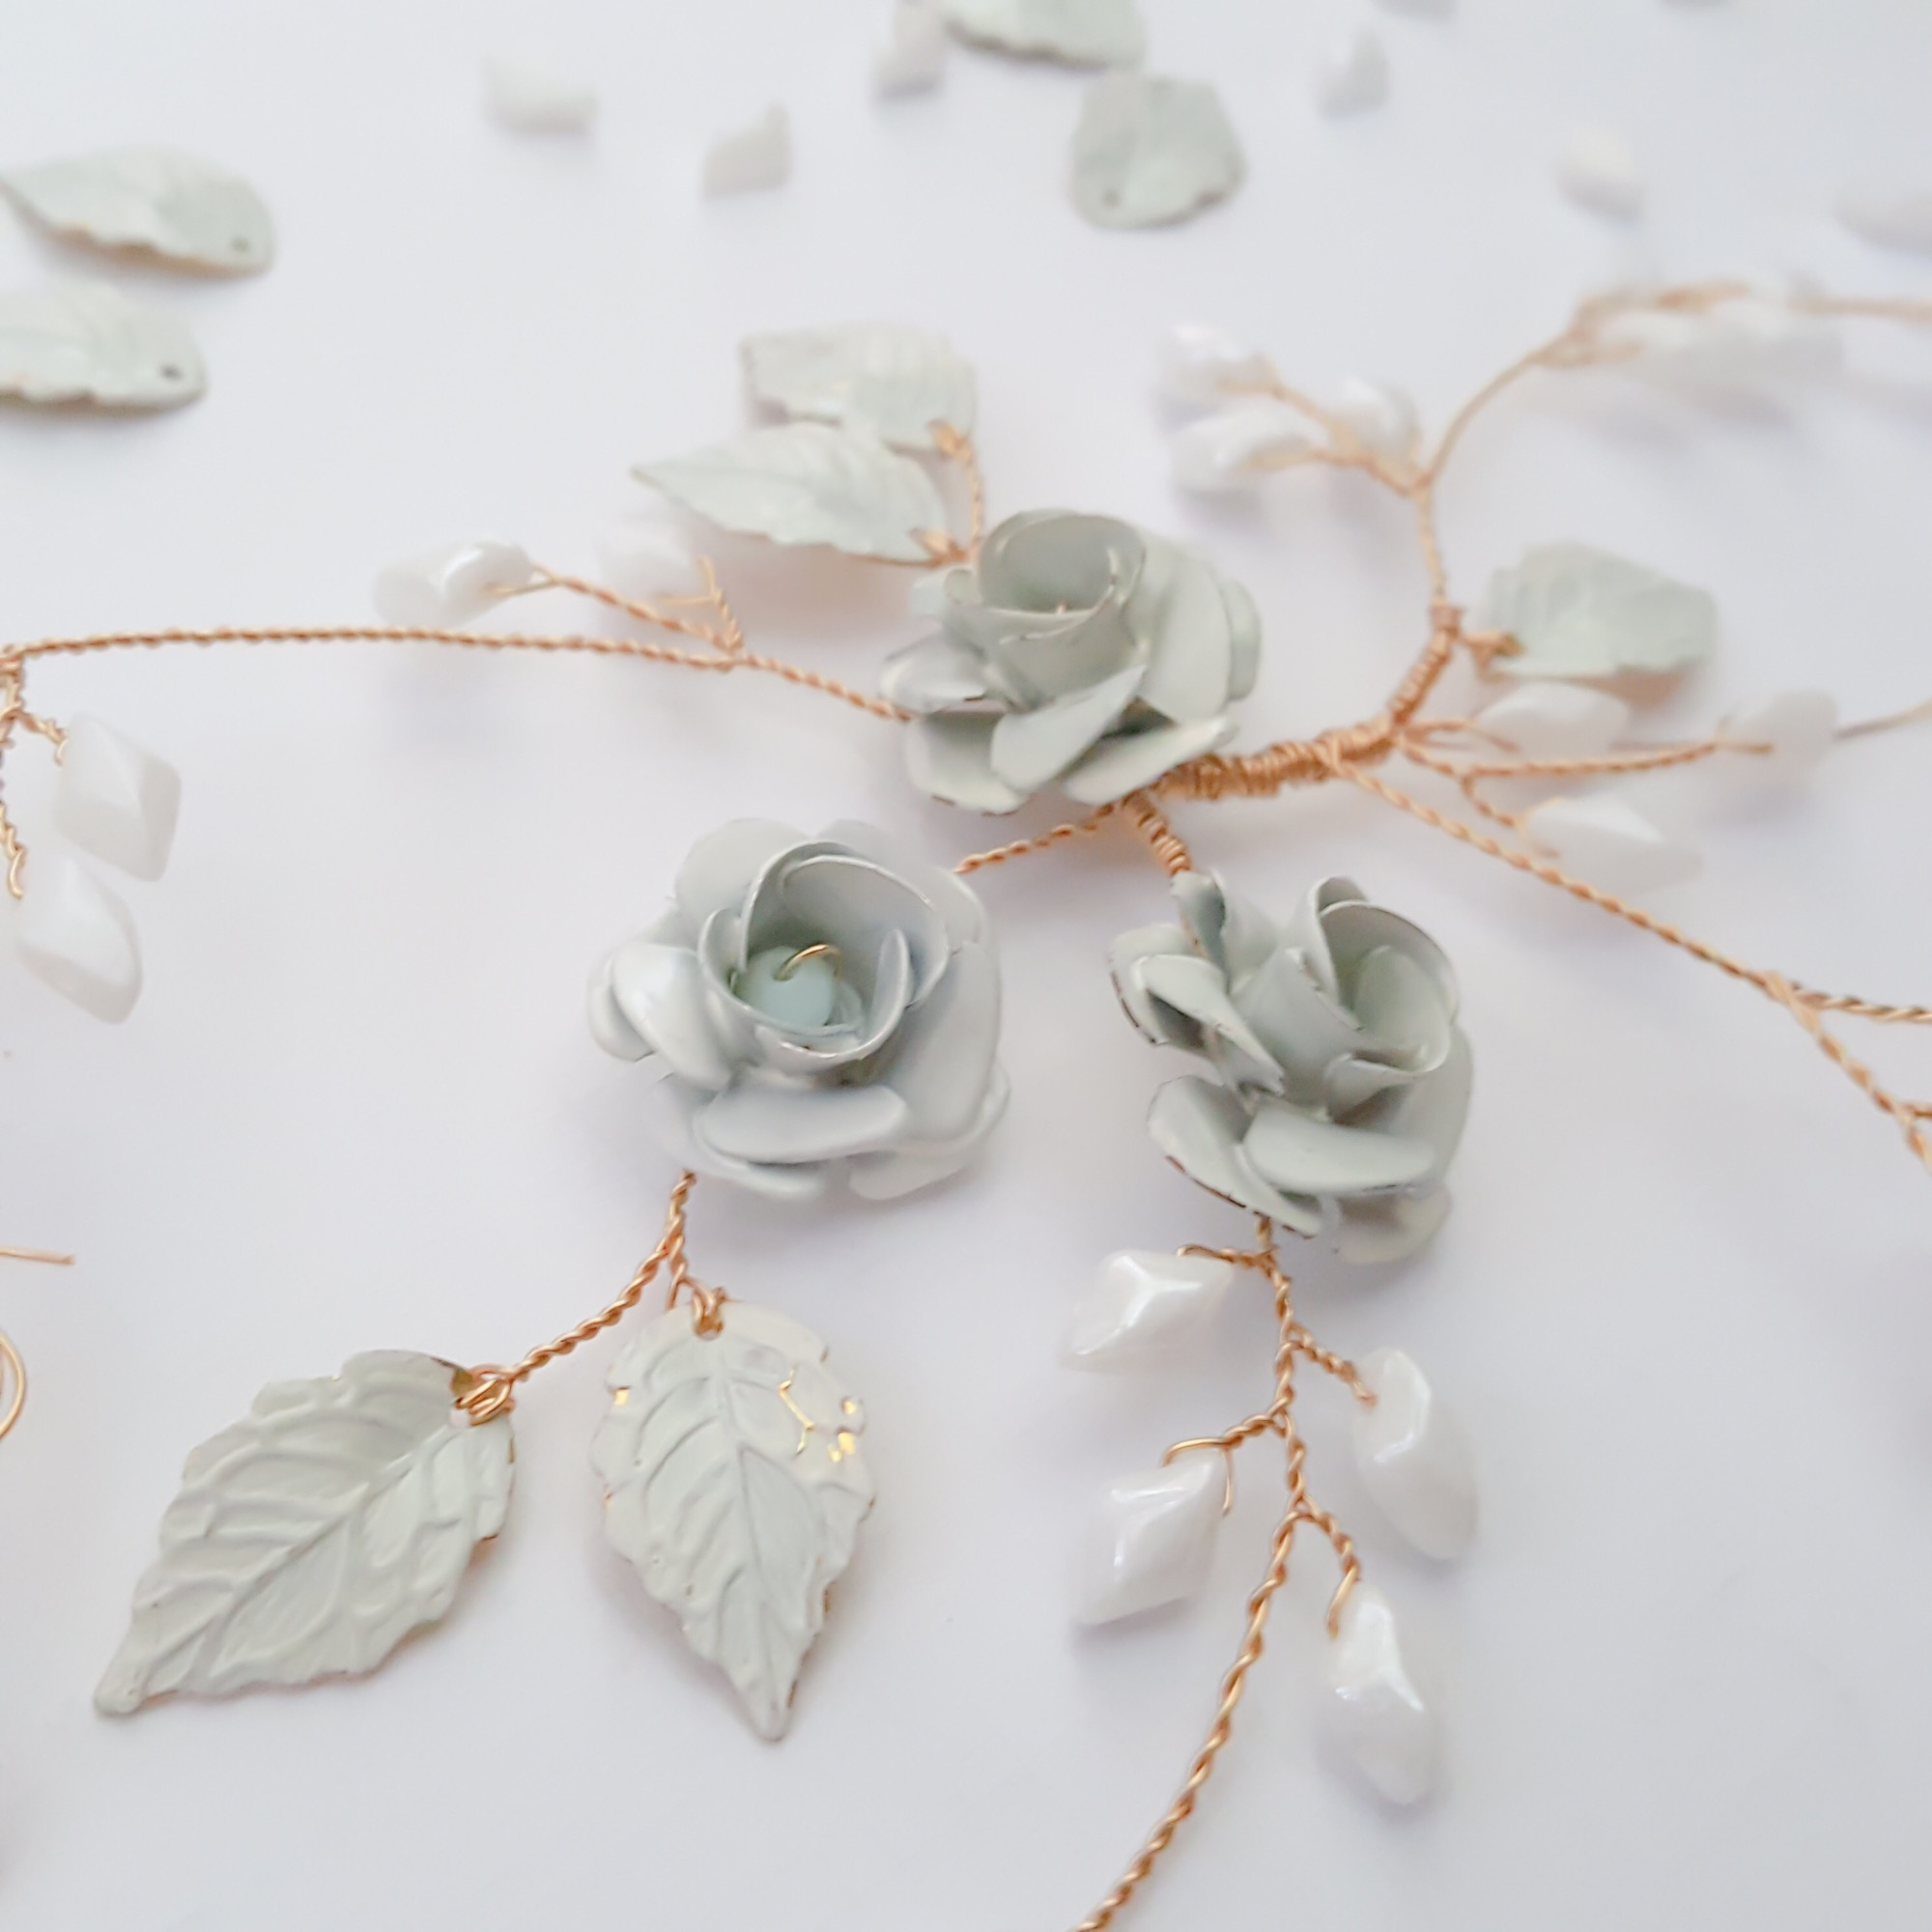 bespoke bridal hair accessories by Clare Lloyd